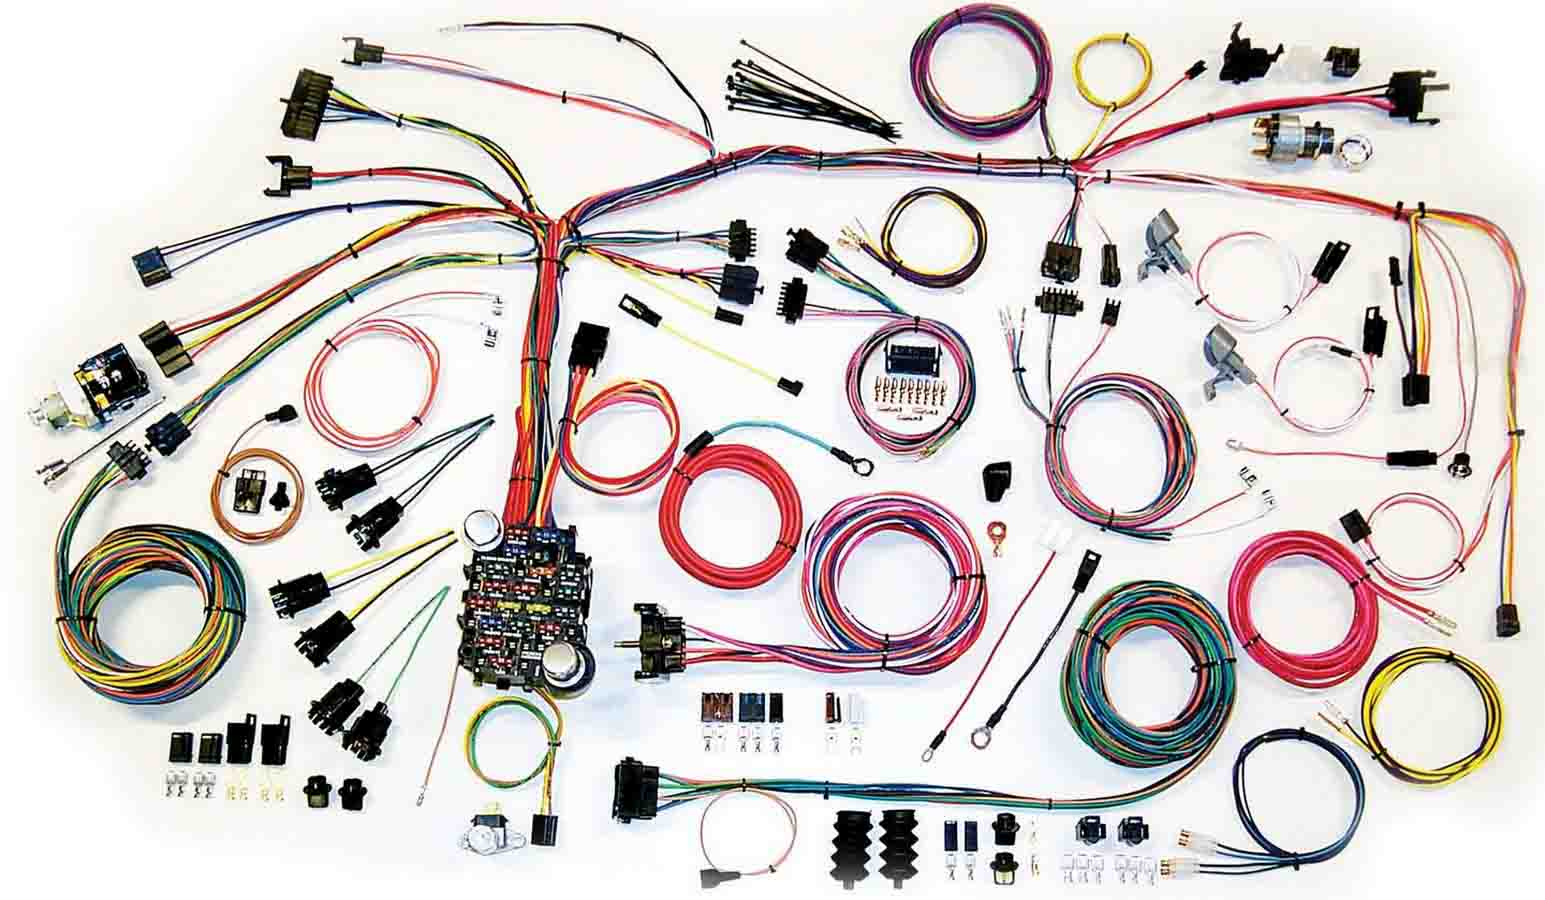 Shop For Full Wiring Harness Application Specific 1967 C10 Steering Column Diagram Schematic 67 68 Camaro Wire Harnes System